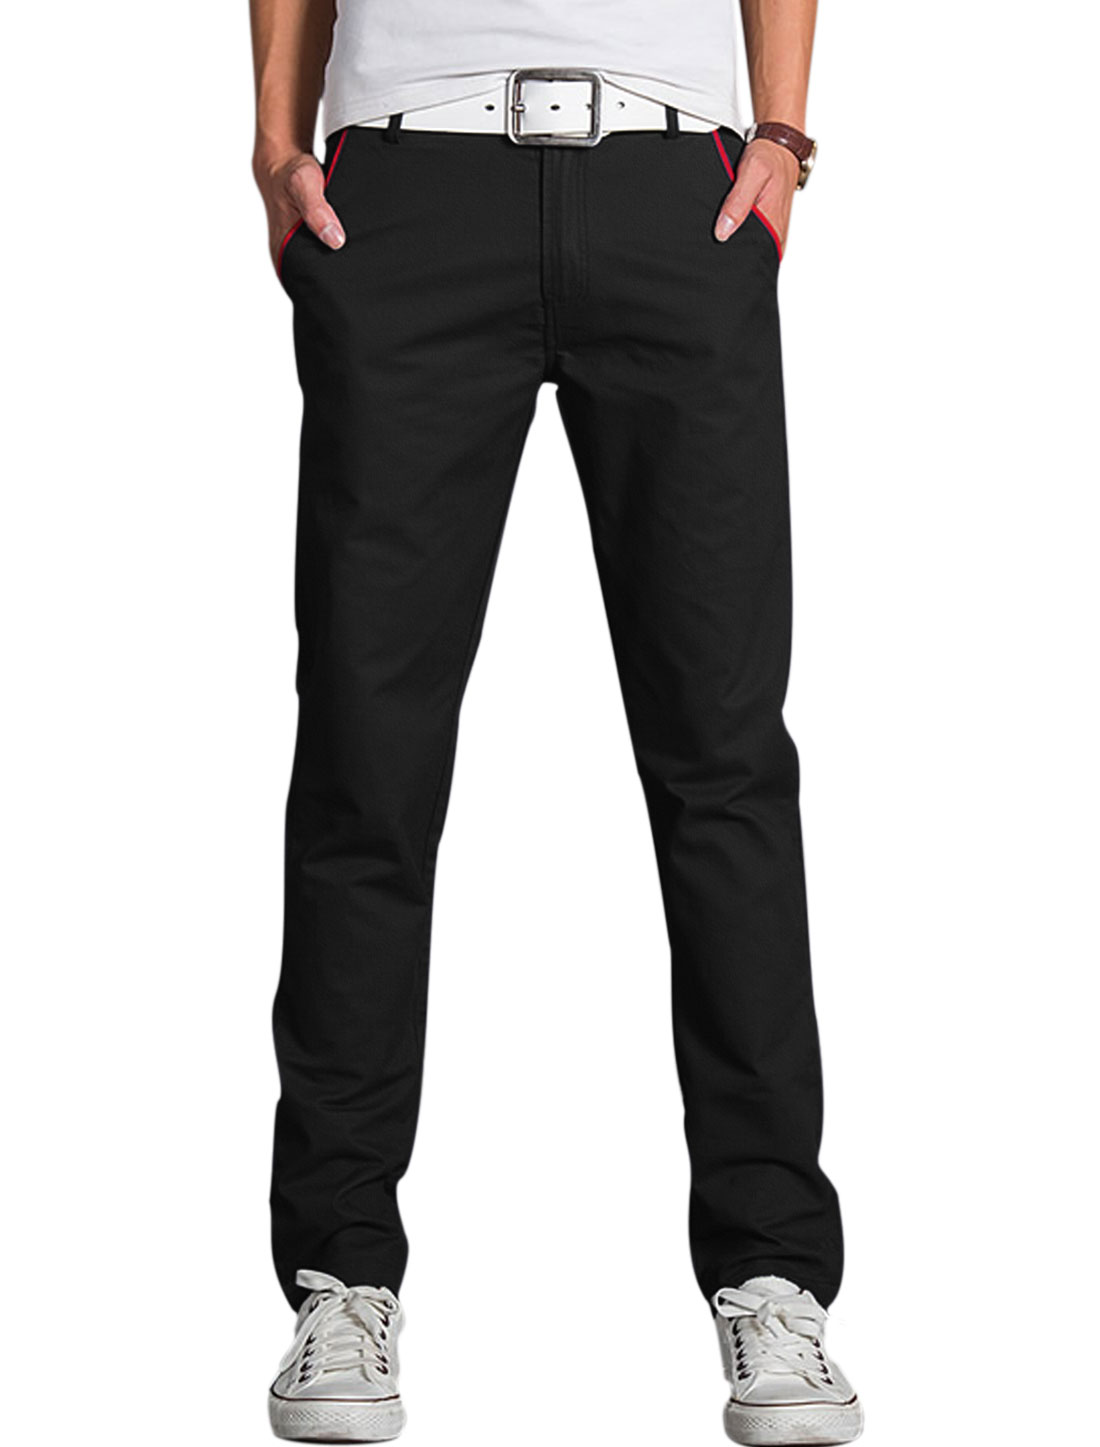 Men Mid Waist Zip Fly Slim Fit Casual Pants Black W36